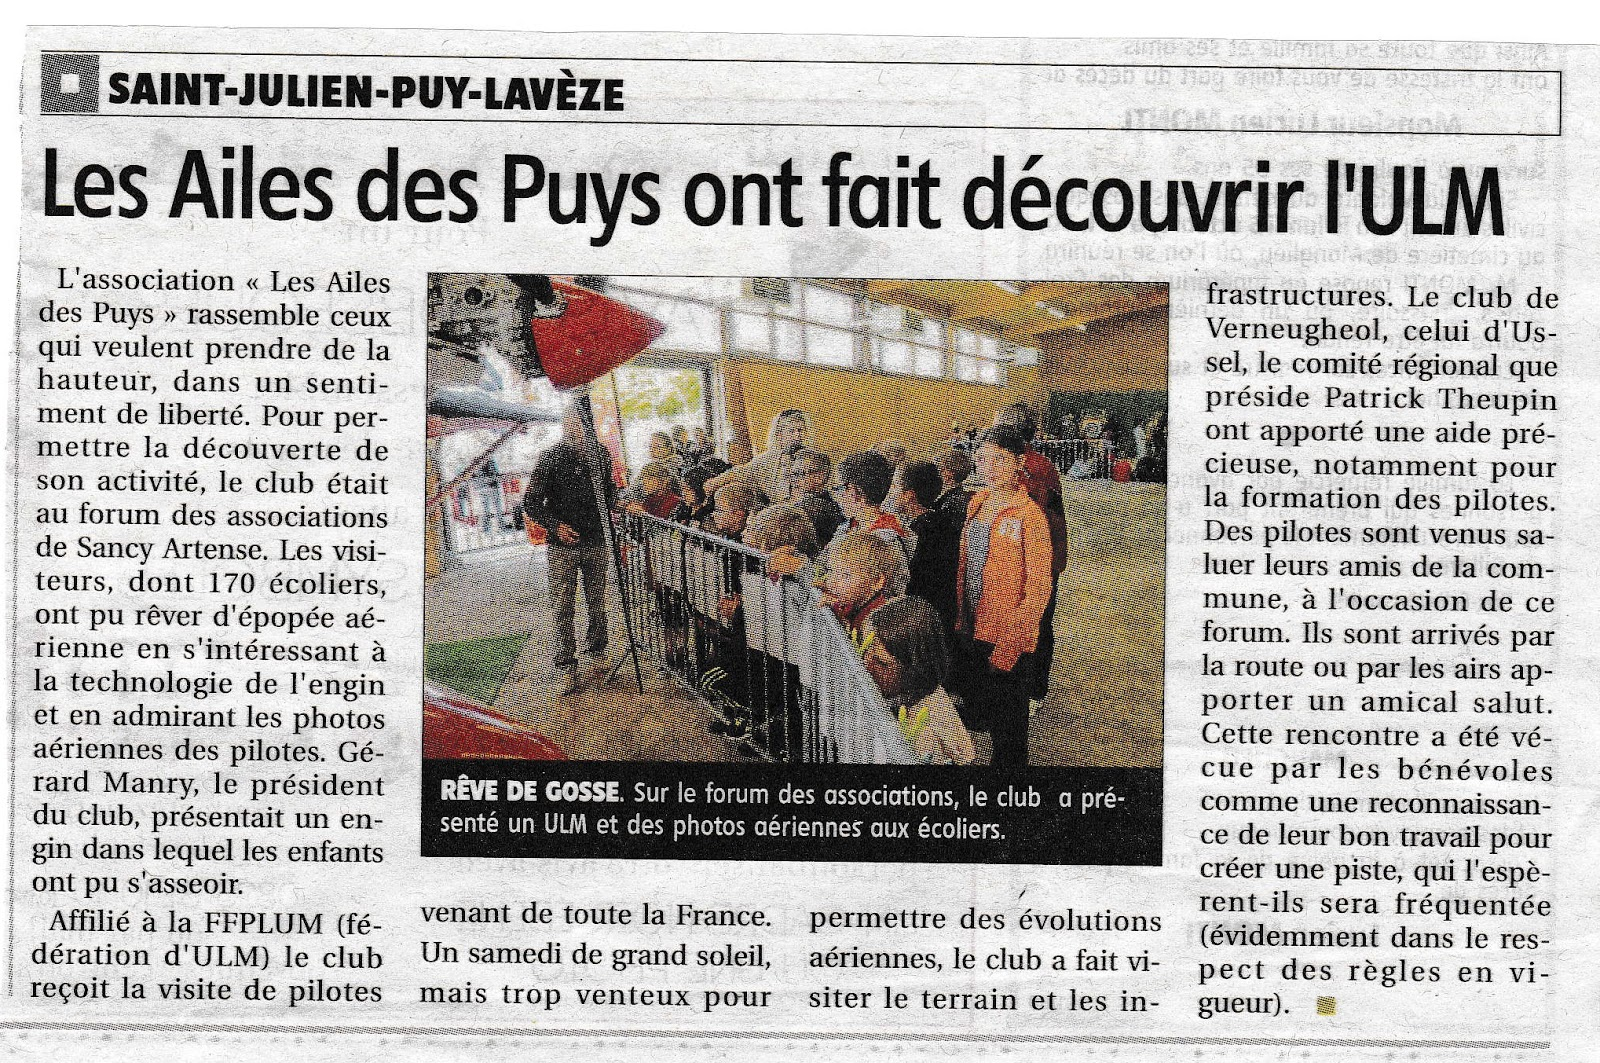 FORUM DES ASSOCIATIONS DE SANCY-ARTENSE